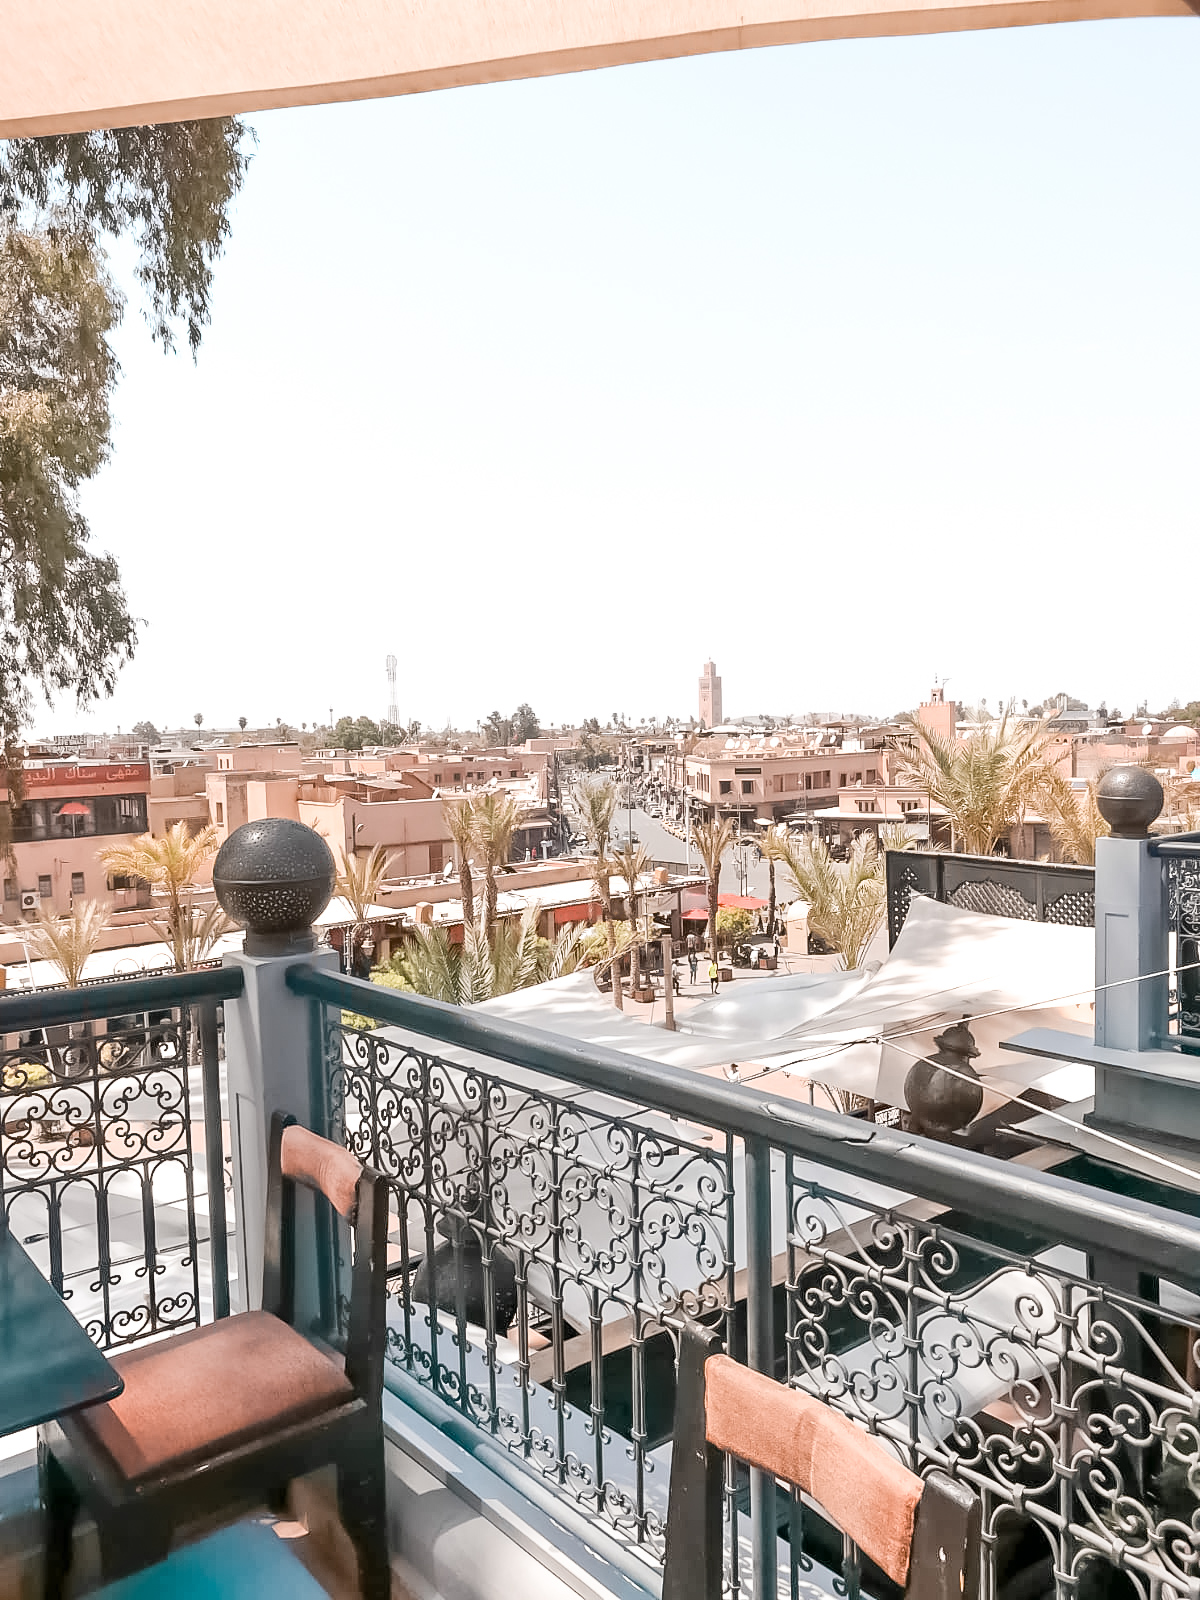 Rooftops with stunning views over the entire city! #travel #Morocco #thingstodo #marrakech